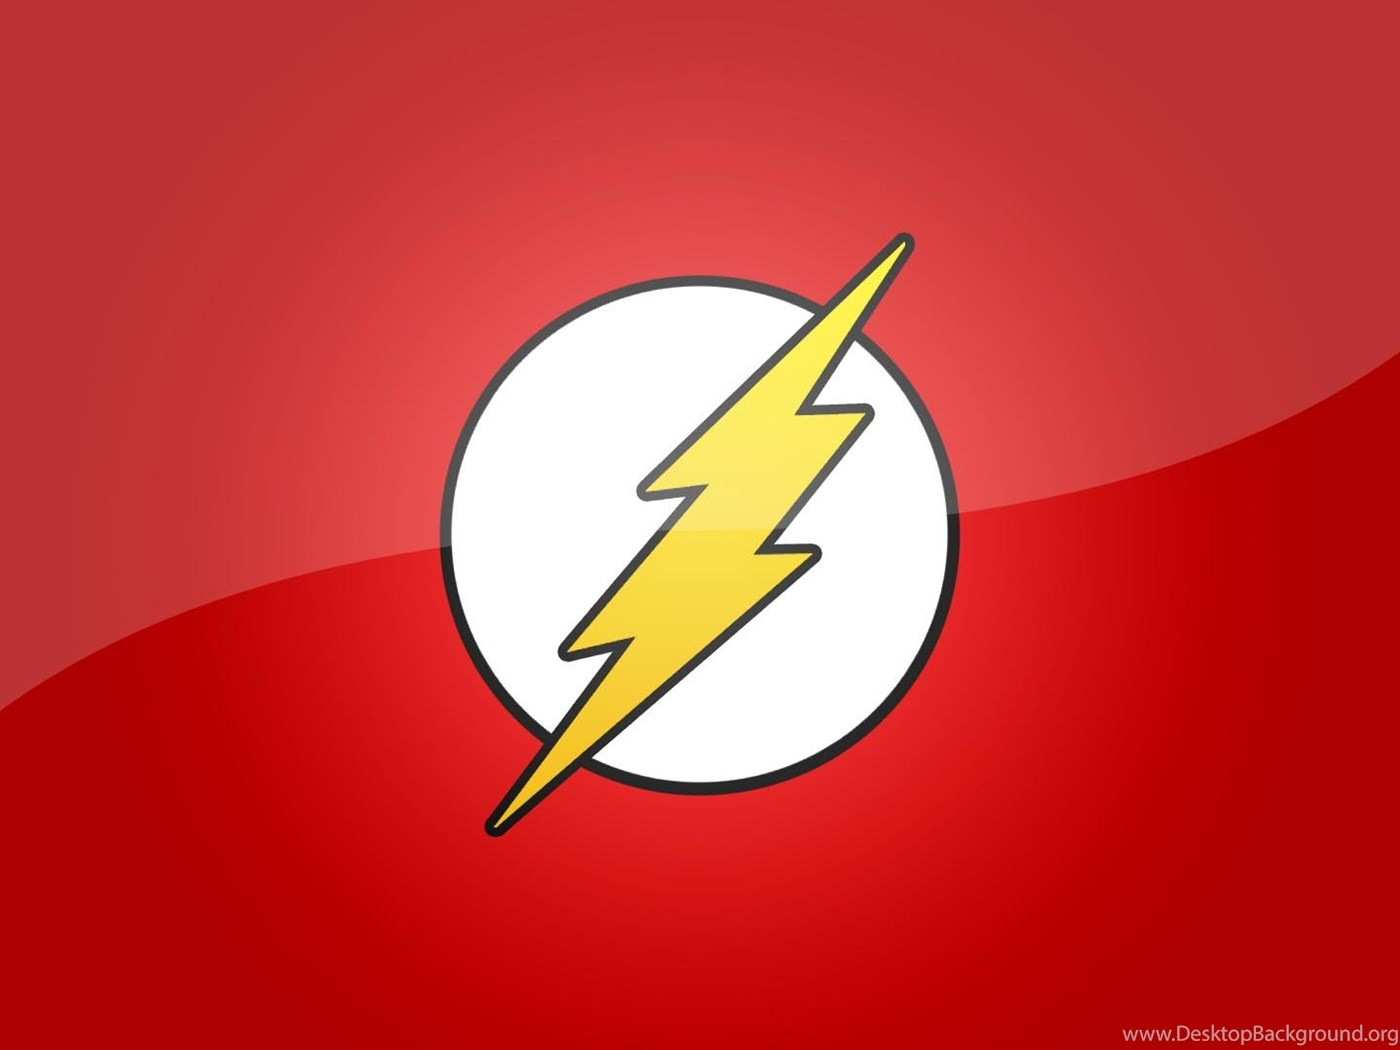 Active Wallpaper Iphone X Wallpapers The Flash Symbol Hd 1920x1080 Desktop Background